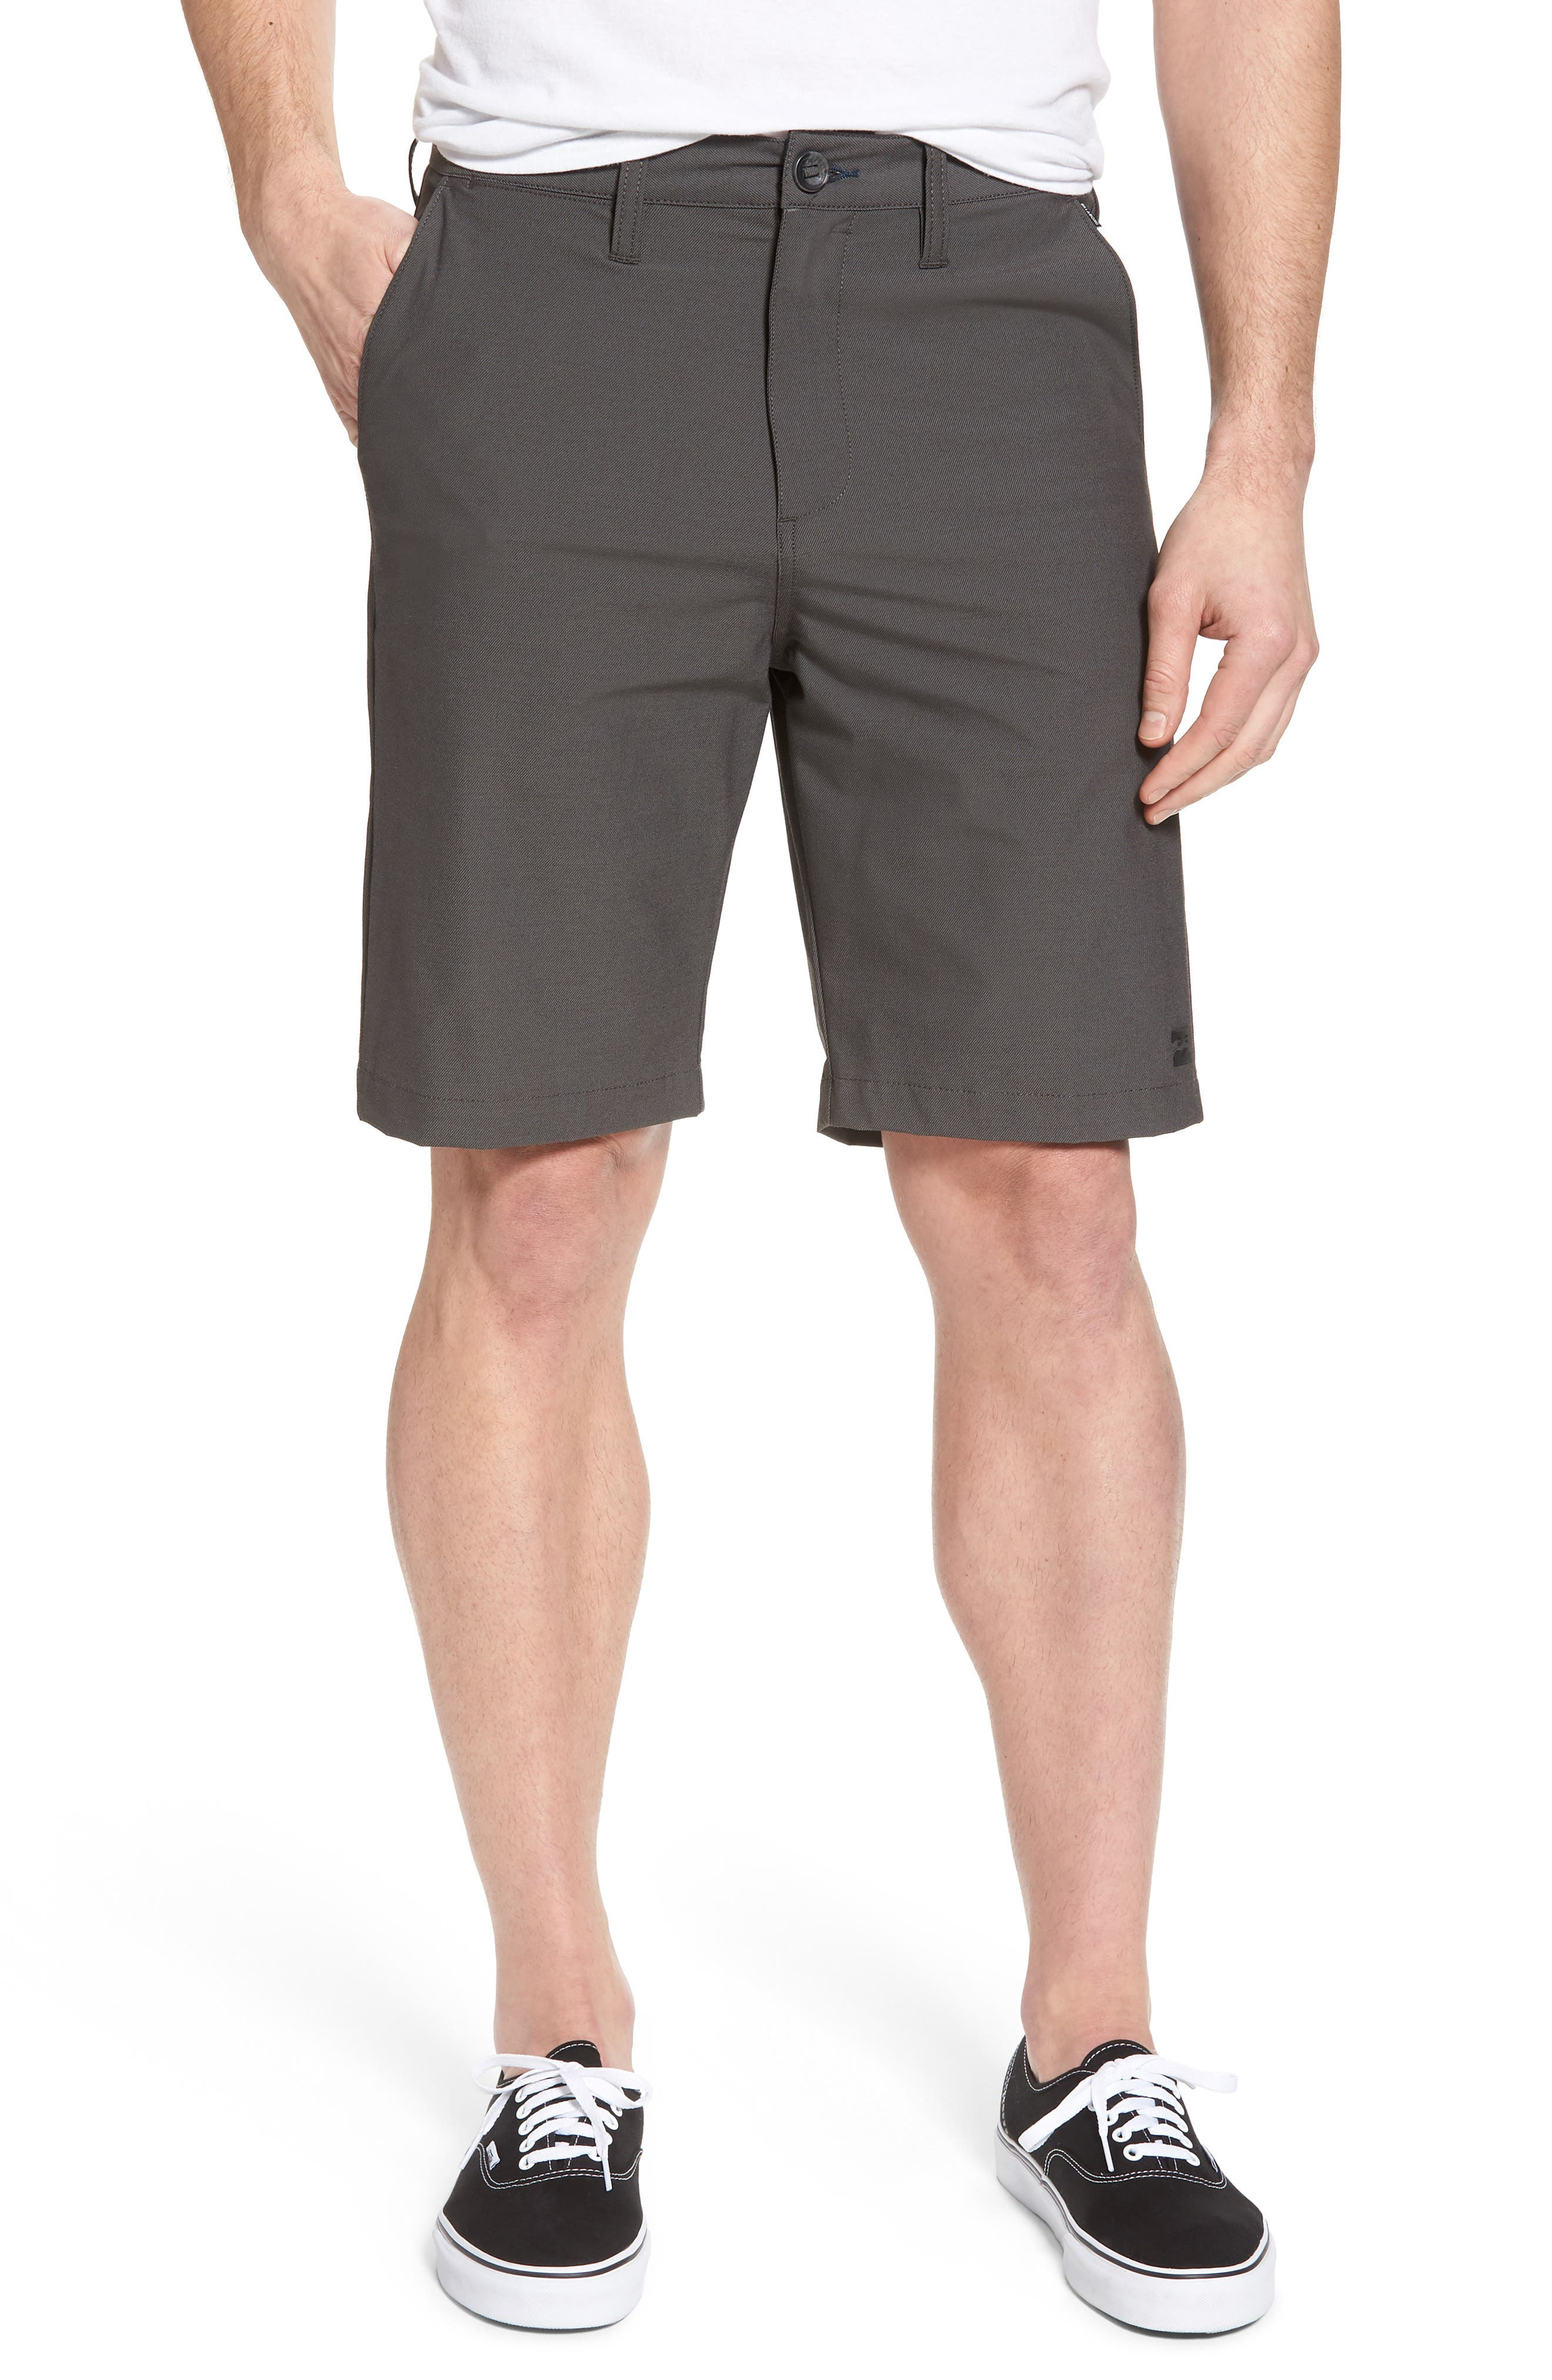 Crossfire X Submersible Twill Shorts,                             Main thumbnail 1, color,                             001